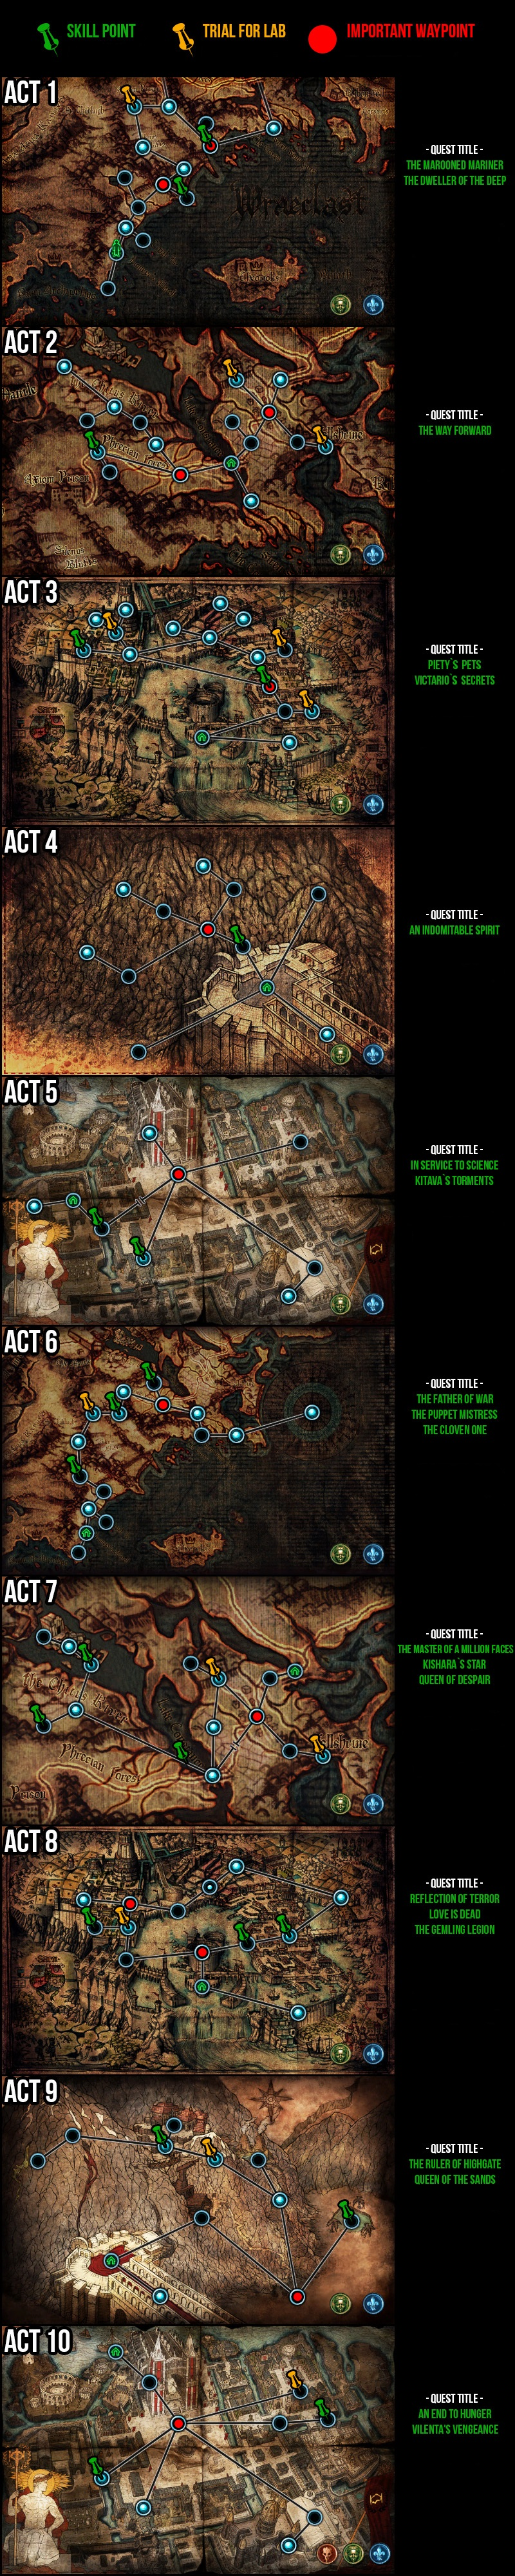 Path Of Exile Skill Point Quests & Act 1-10 Trails For 3 5 - The